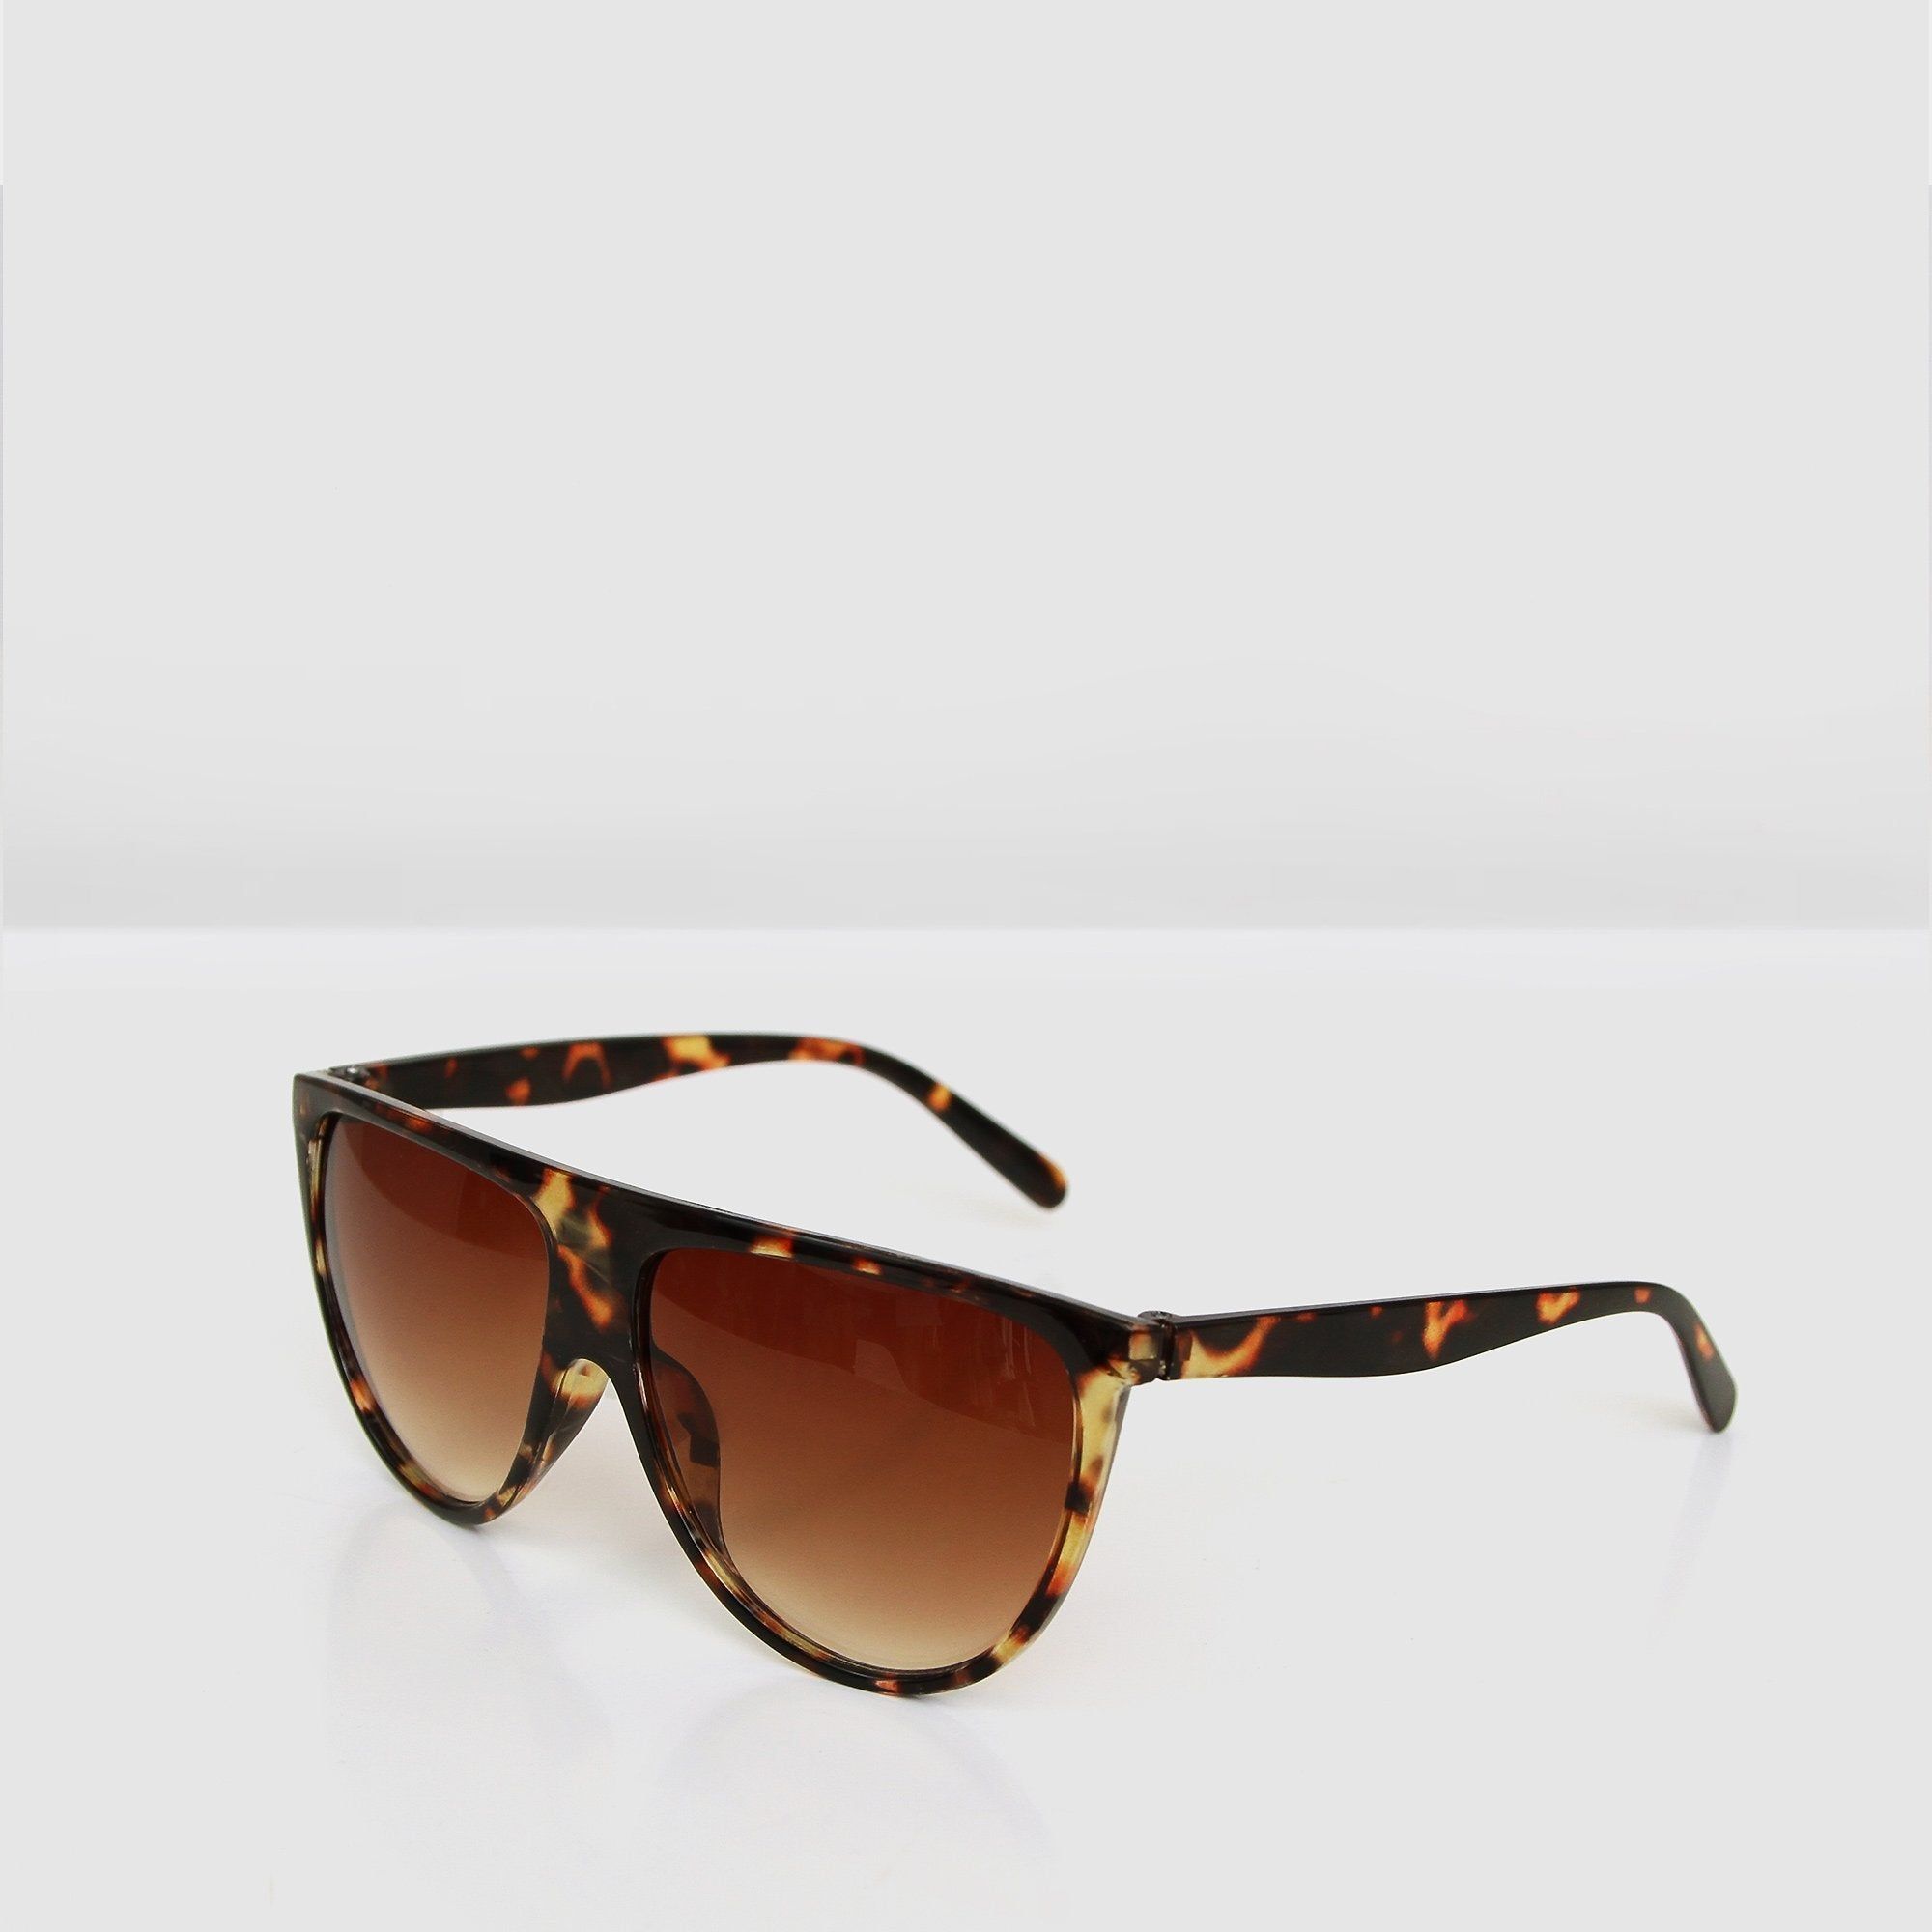 SG0026-DUTS---sunglasse-turtle-side.jpg